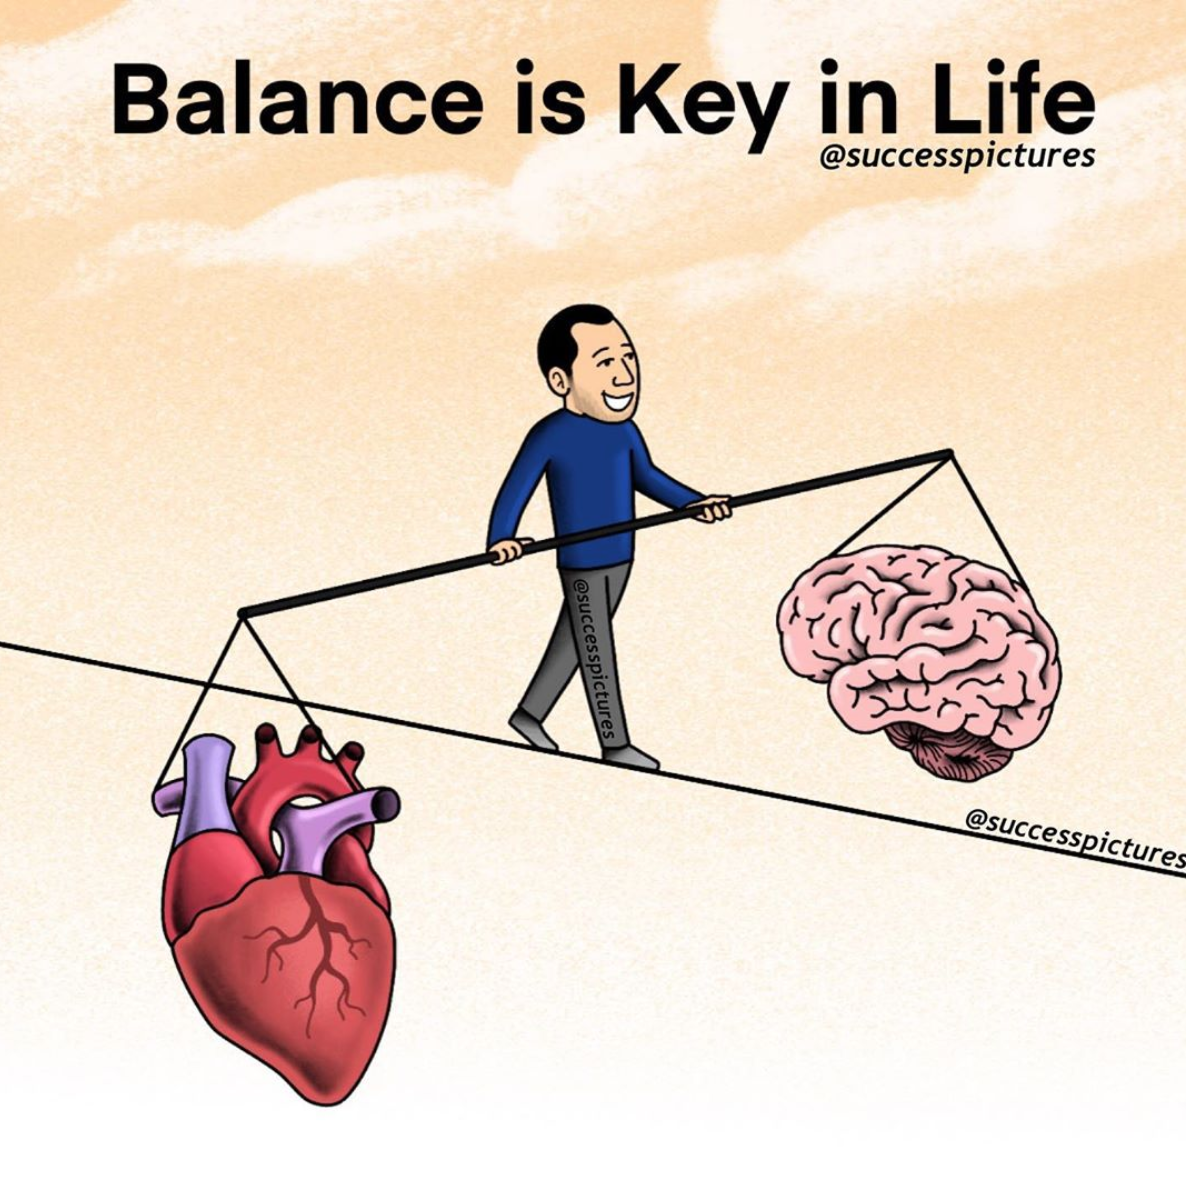 Balance is Key in Life @successpictures https://inspirational.ly